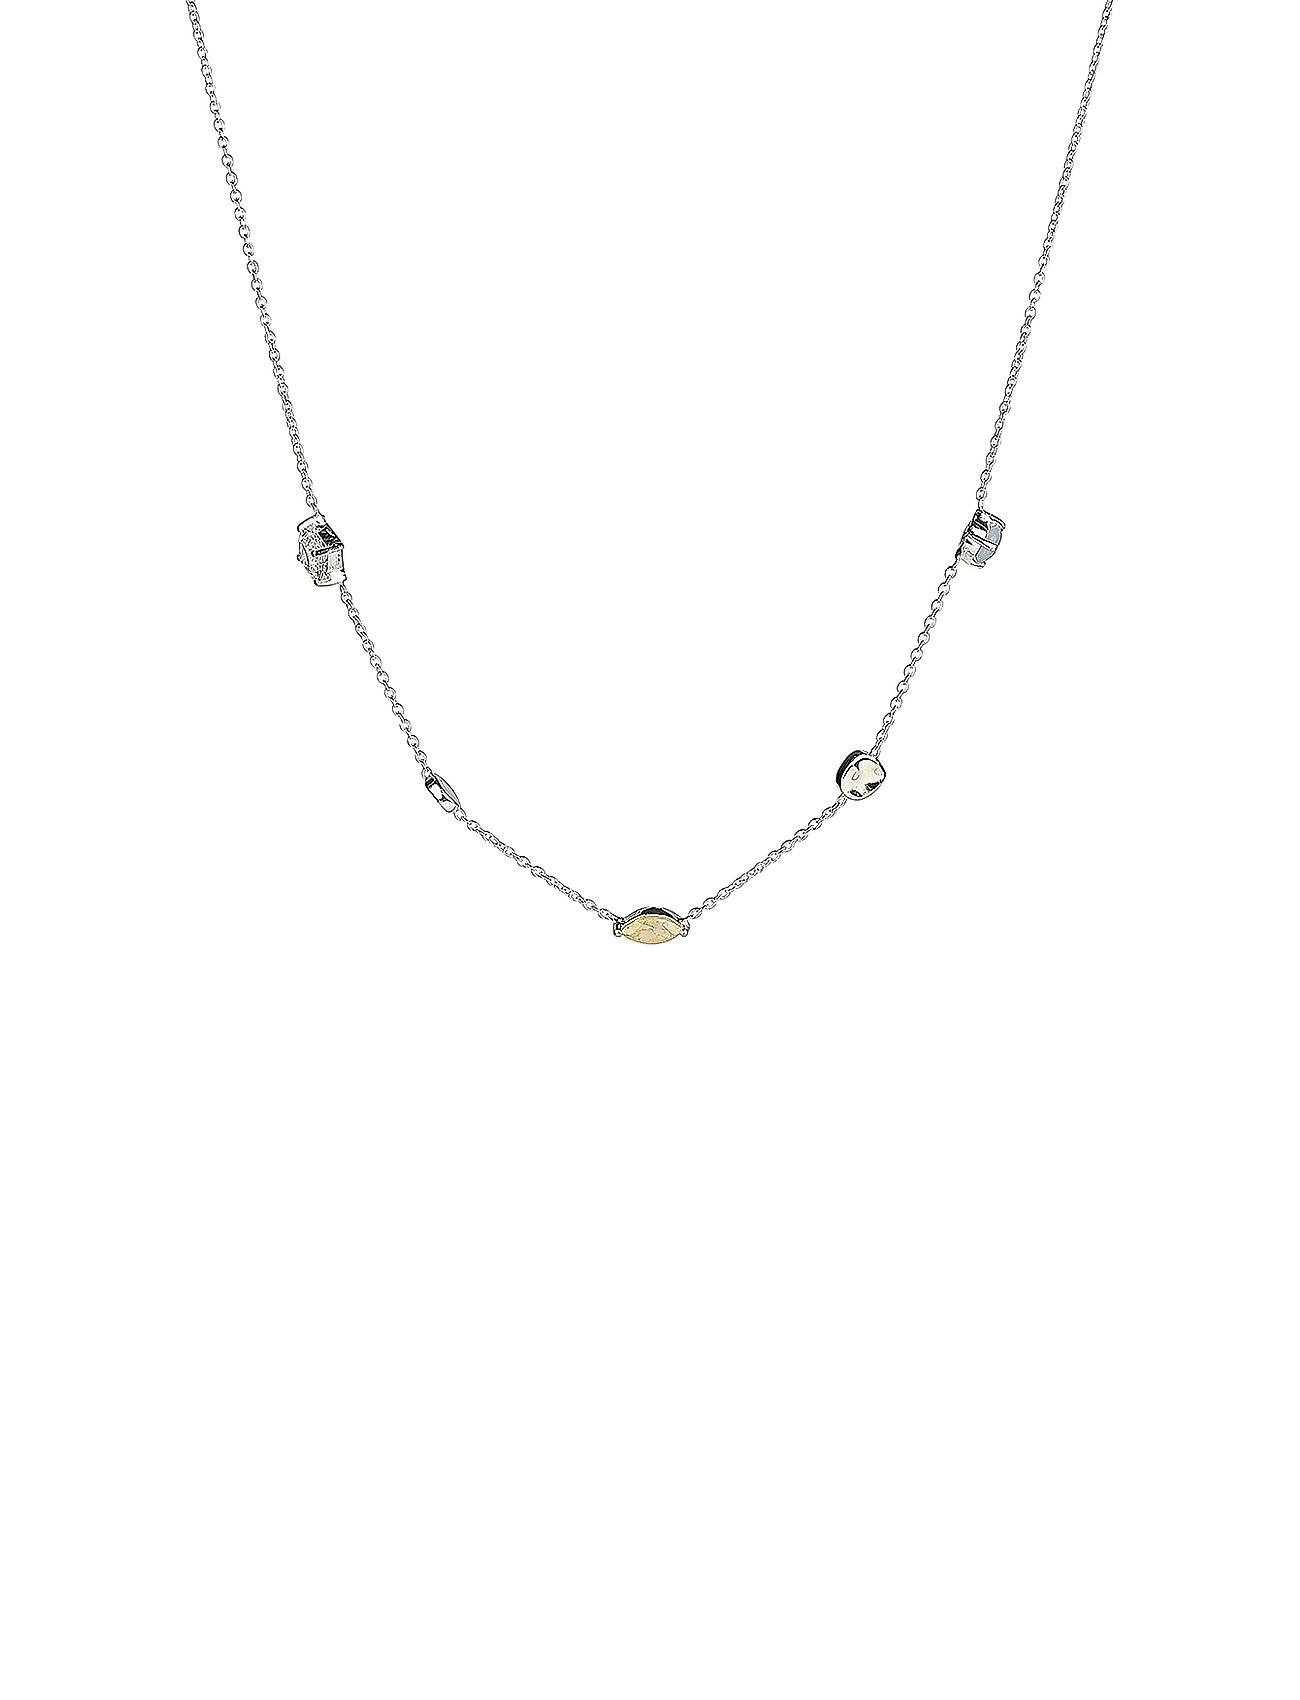 Syster P Divine Multi Necklace Silver Accessories Jewellery Necklaces Dainty Necklaces Hopea Syster P